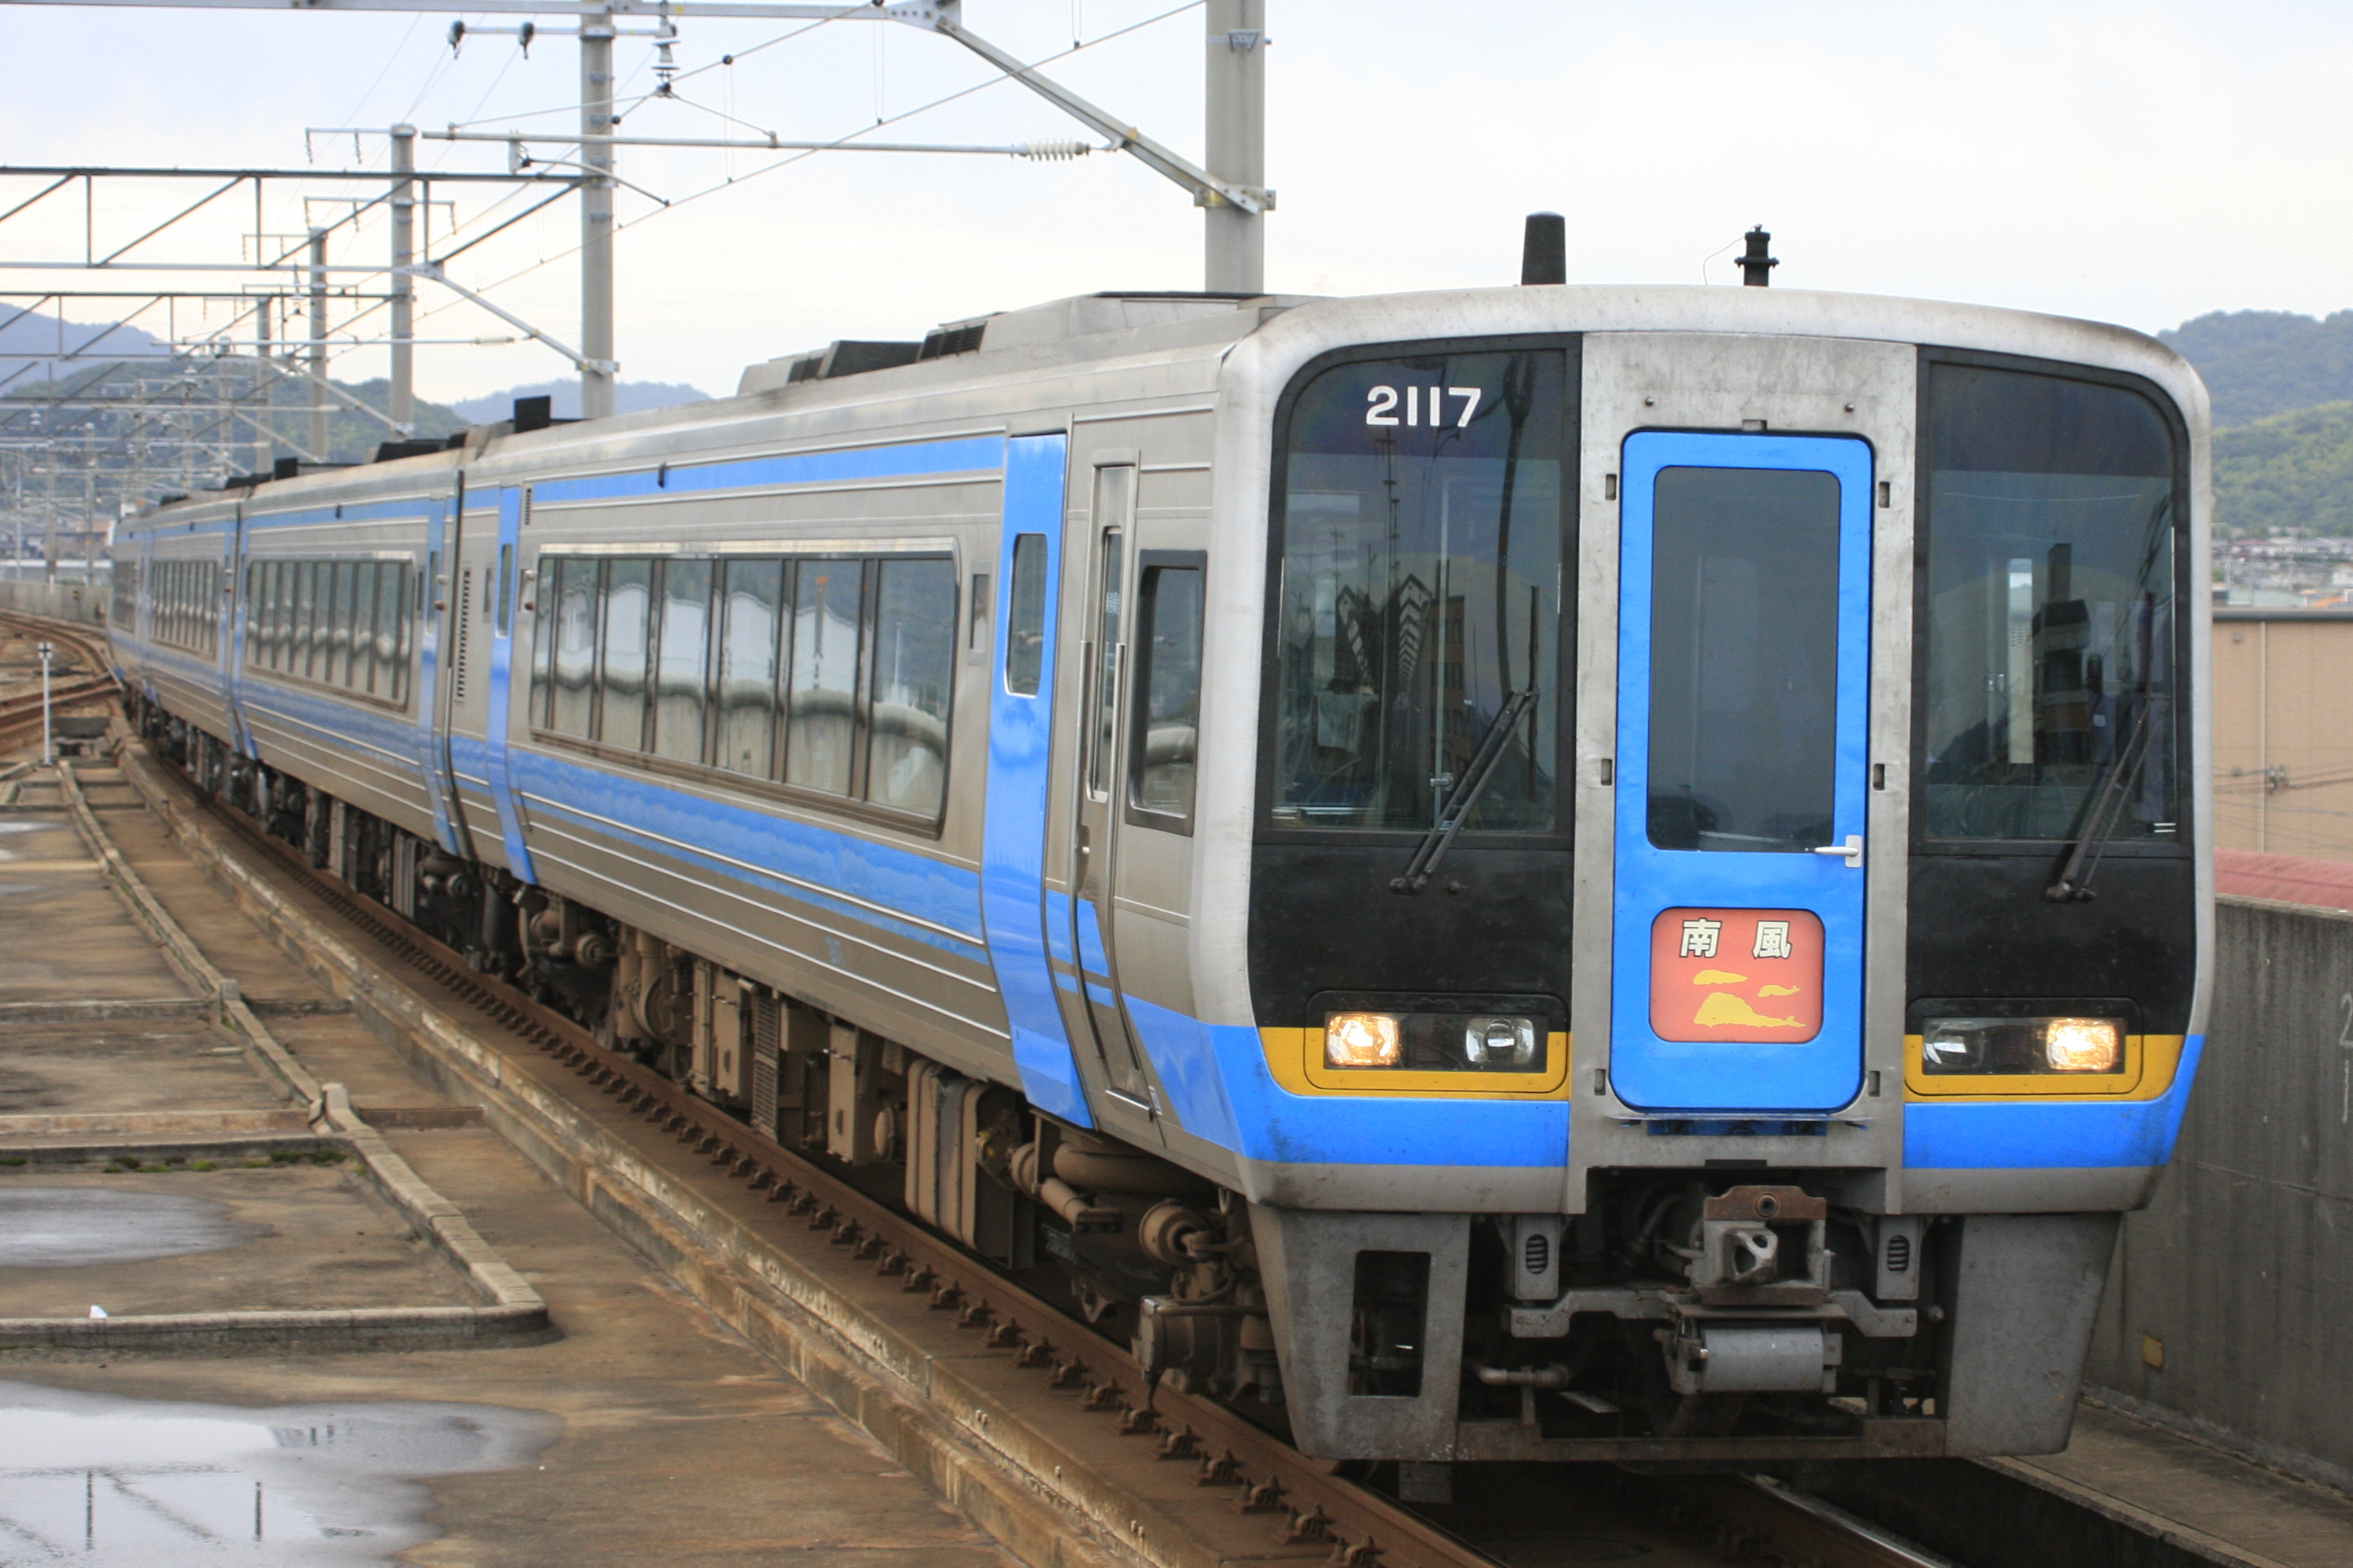 https://upload.wikimedia.org/wikipedia/commons/2/2d/JR_Shikoku_Series_2000_Using_Special_express_Nanpuu.JPG